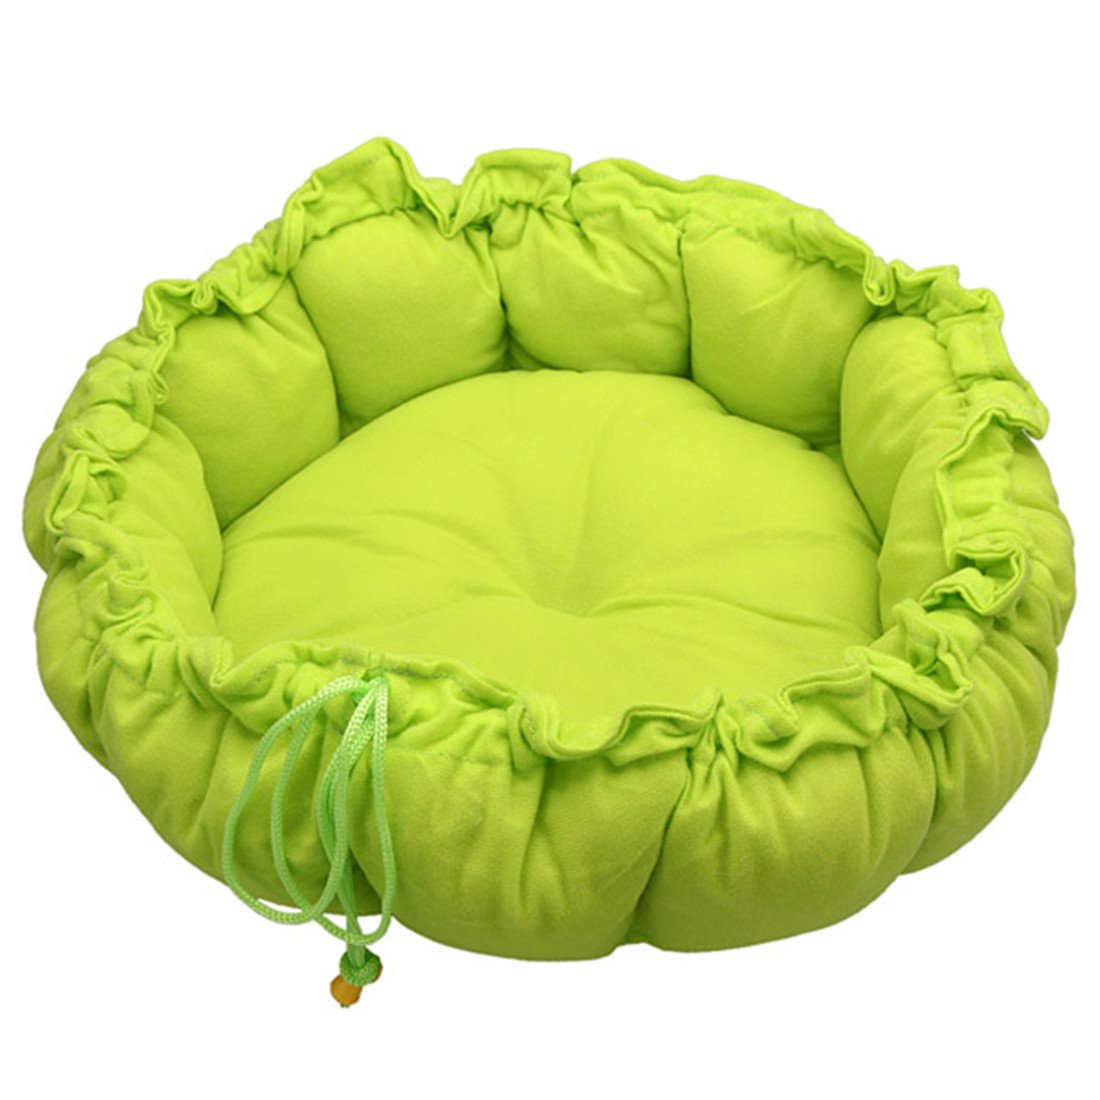 Petsmart in addition to online get cheap wood dog bed aliexpress